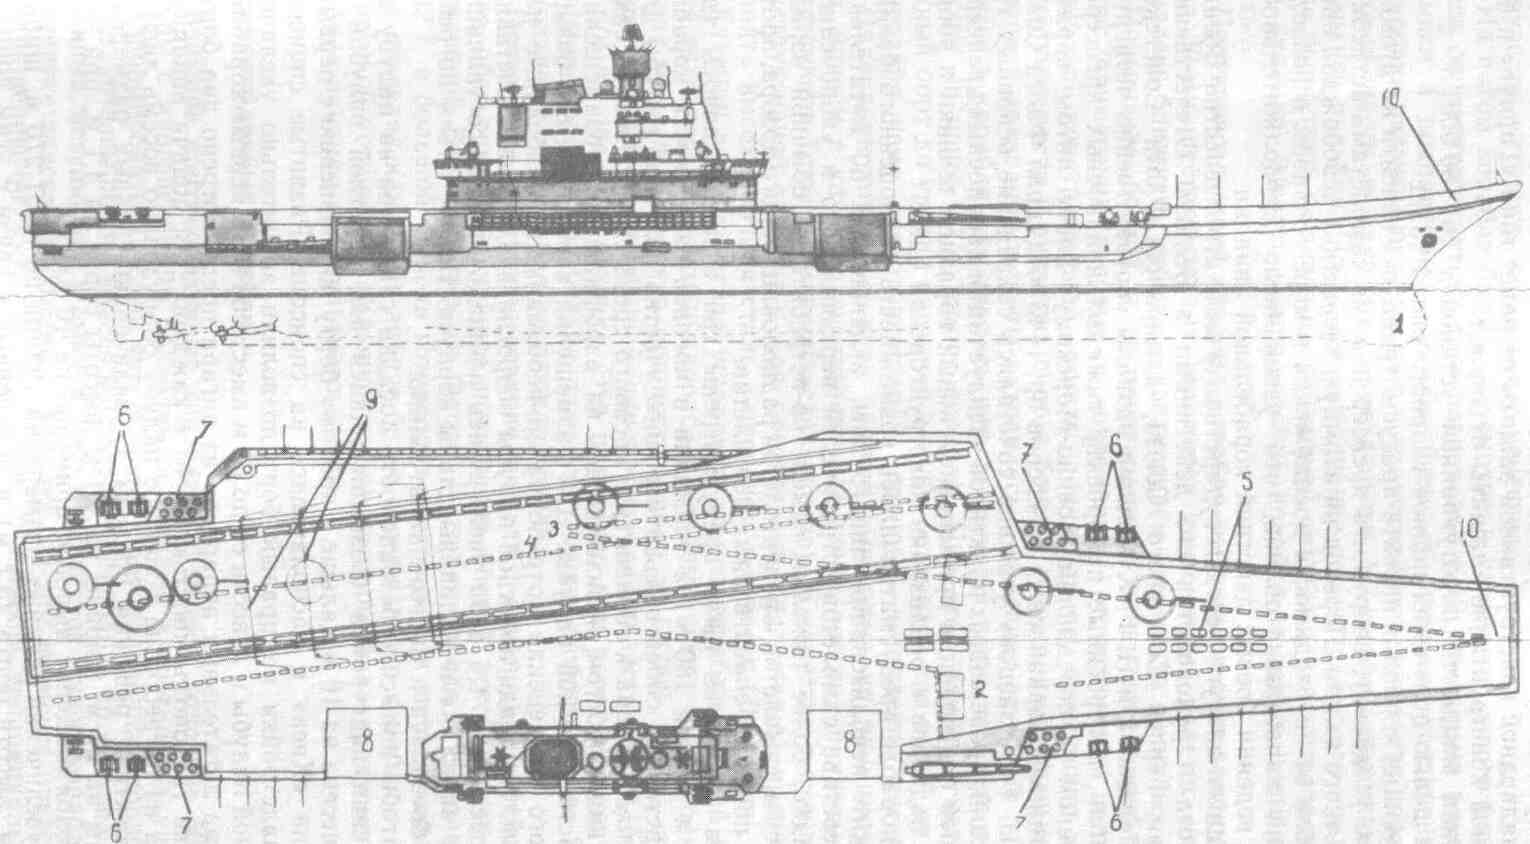 Ships Blueprints http://www.freeblueprints.net/cold-war-crisis-board-admiral-kuznetsov-blueprints/modely3d.narod.ru*blueprints*ships*kuznetsov.jpg/